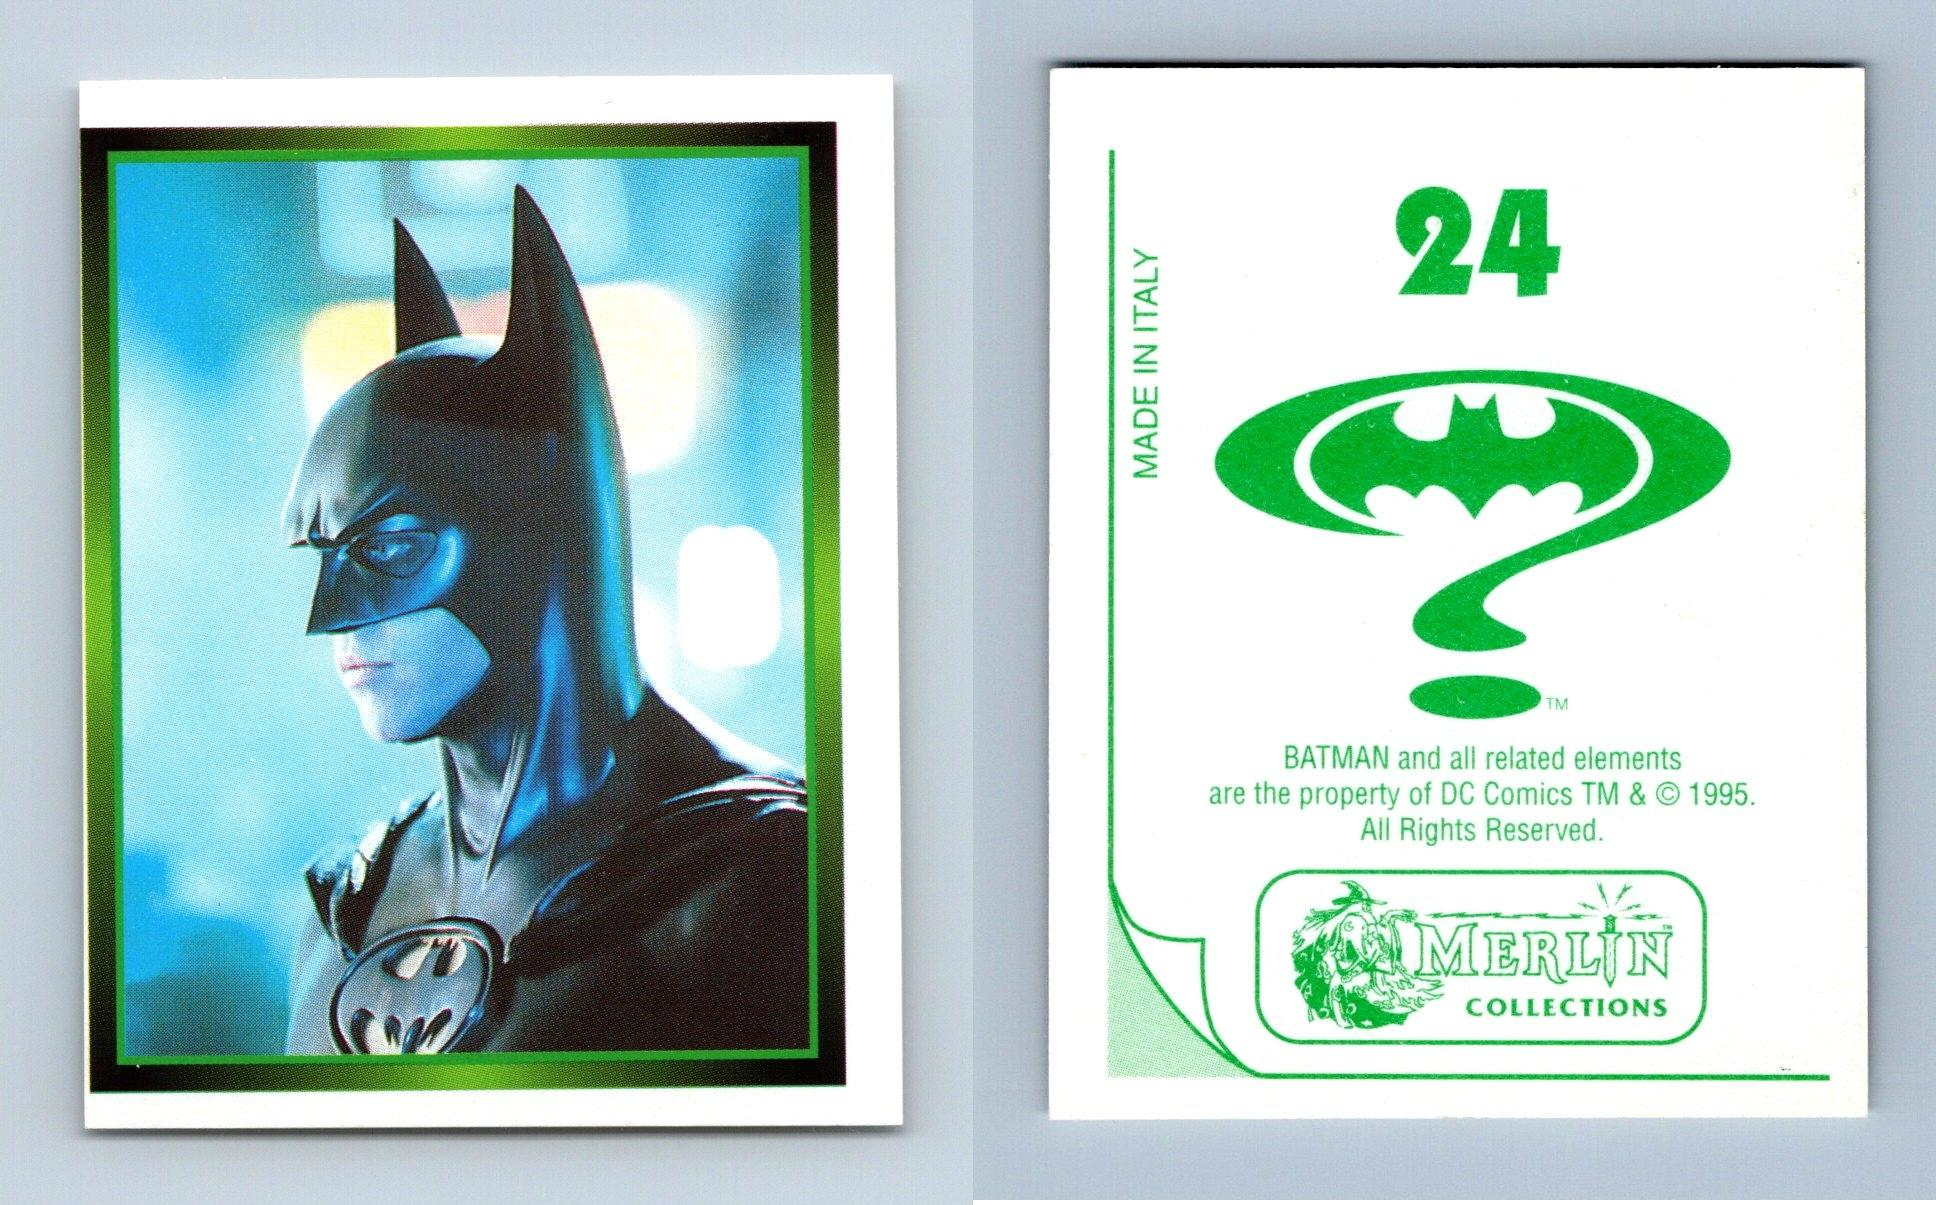 Batman Forever Movie #108 Merlin 1995 Foil Sticker